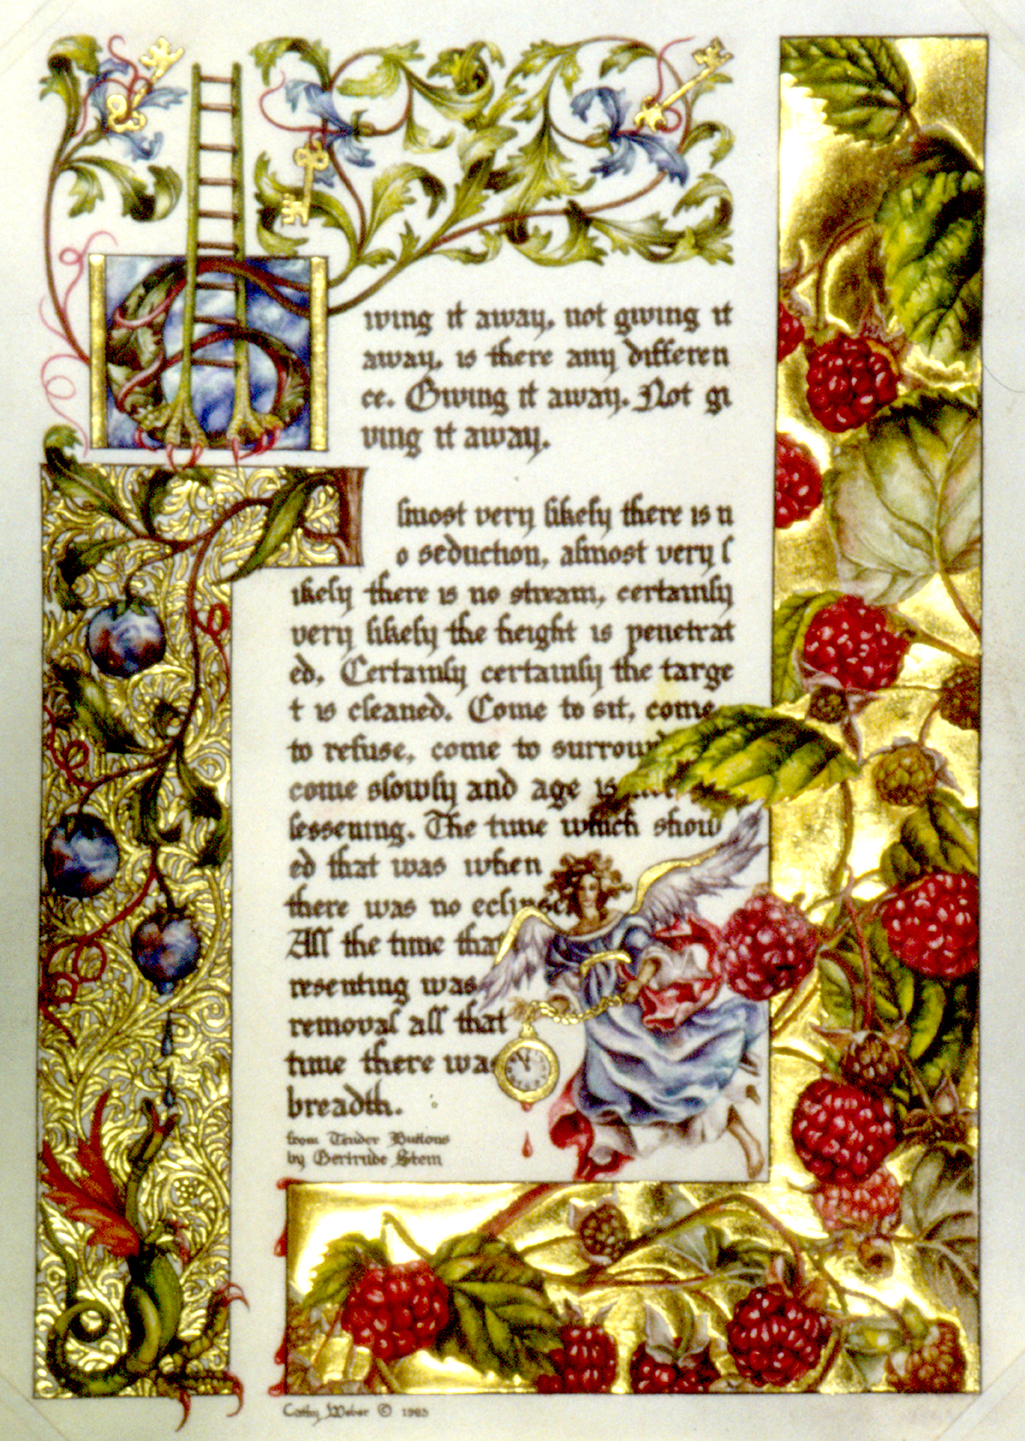 cathy weber - art - illumination - calligraphy - manuscript - watercolor - woman - rose - montana - gertrude stein - tender buttons - raspberry